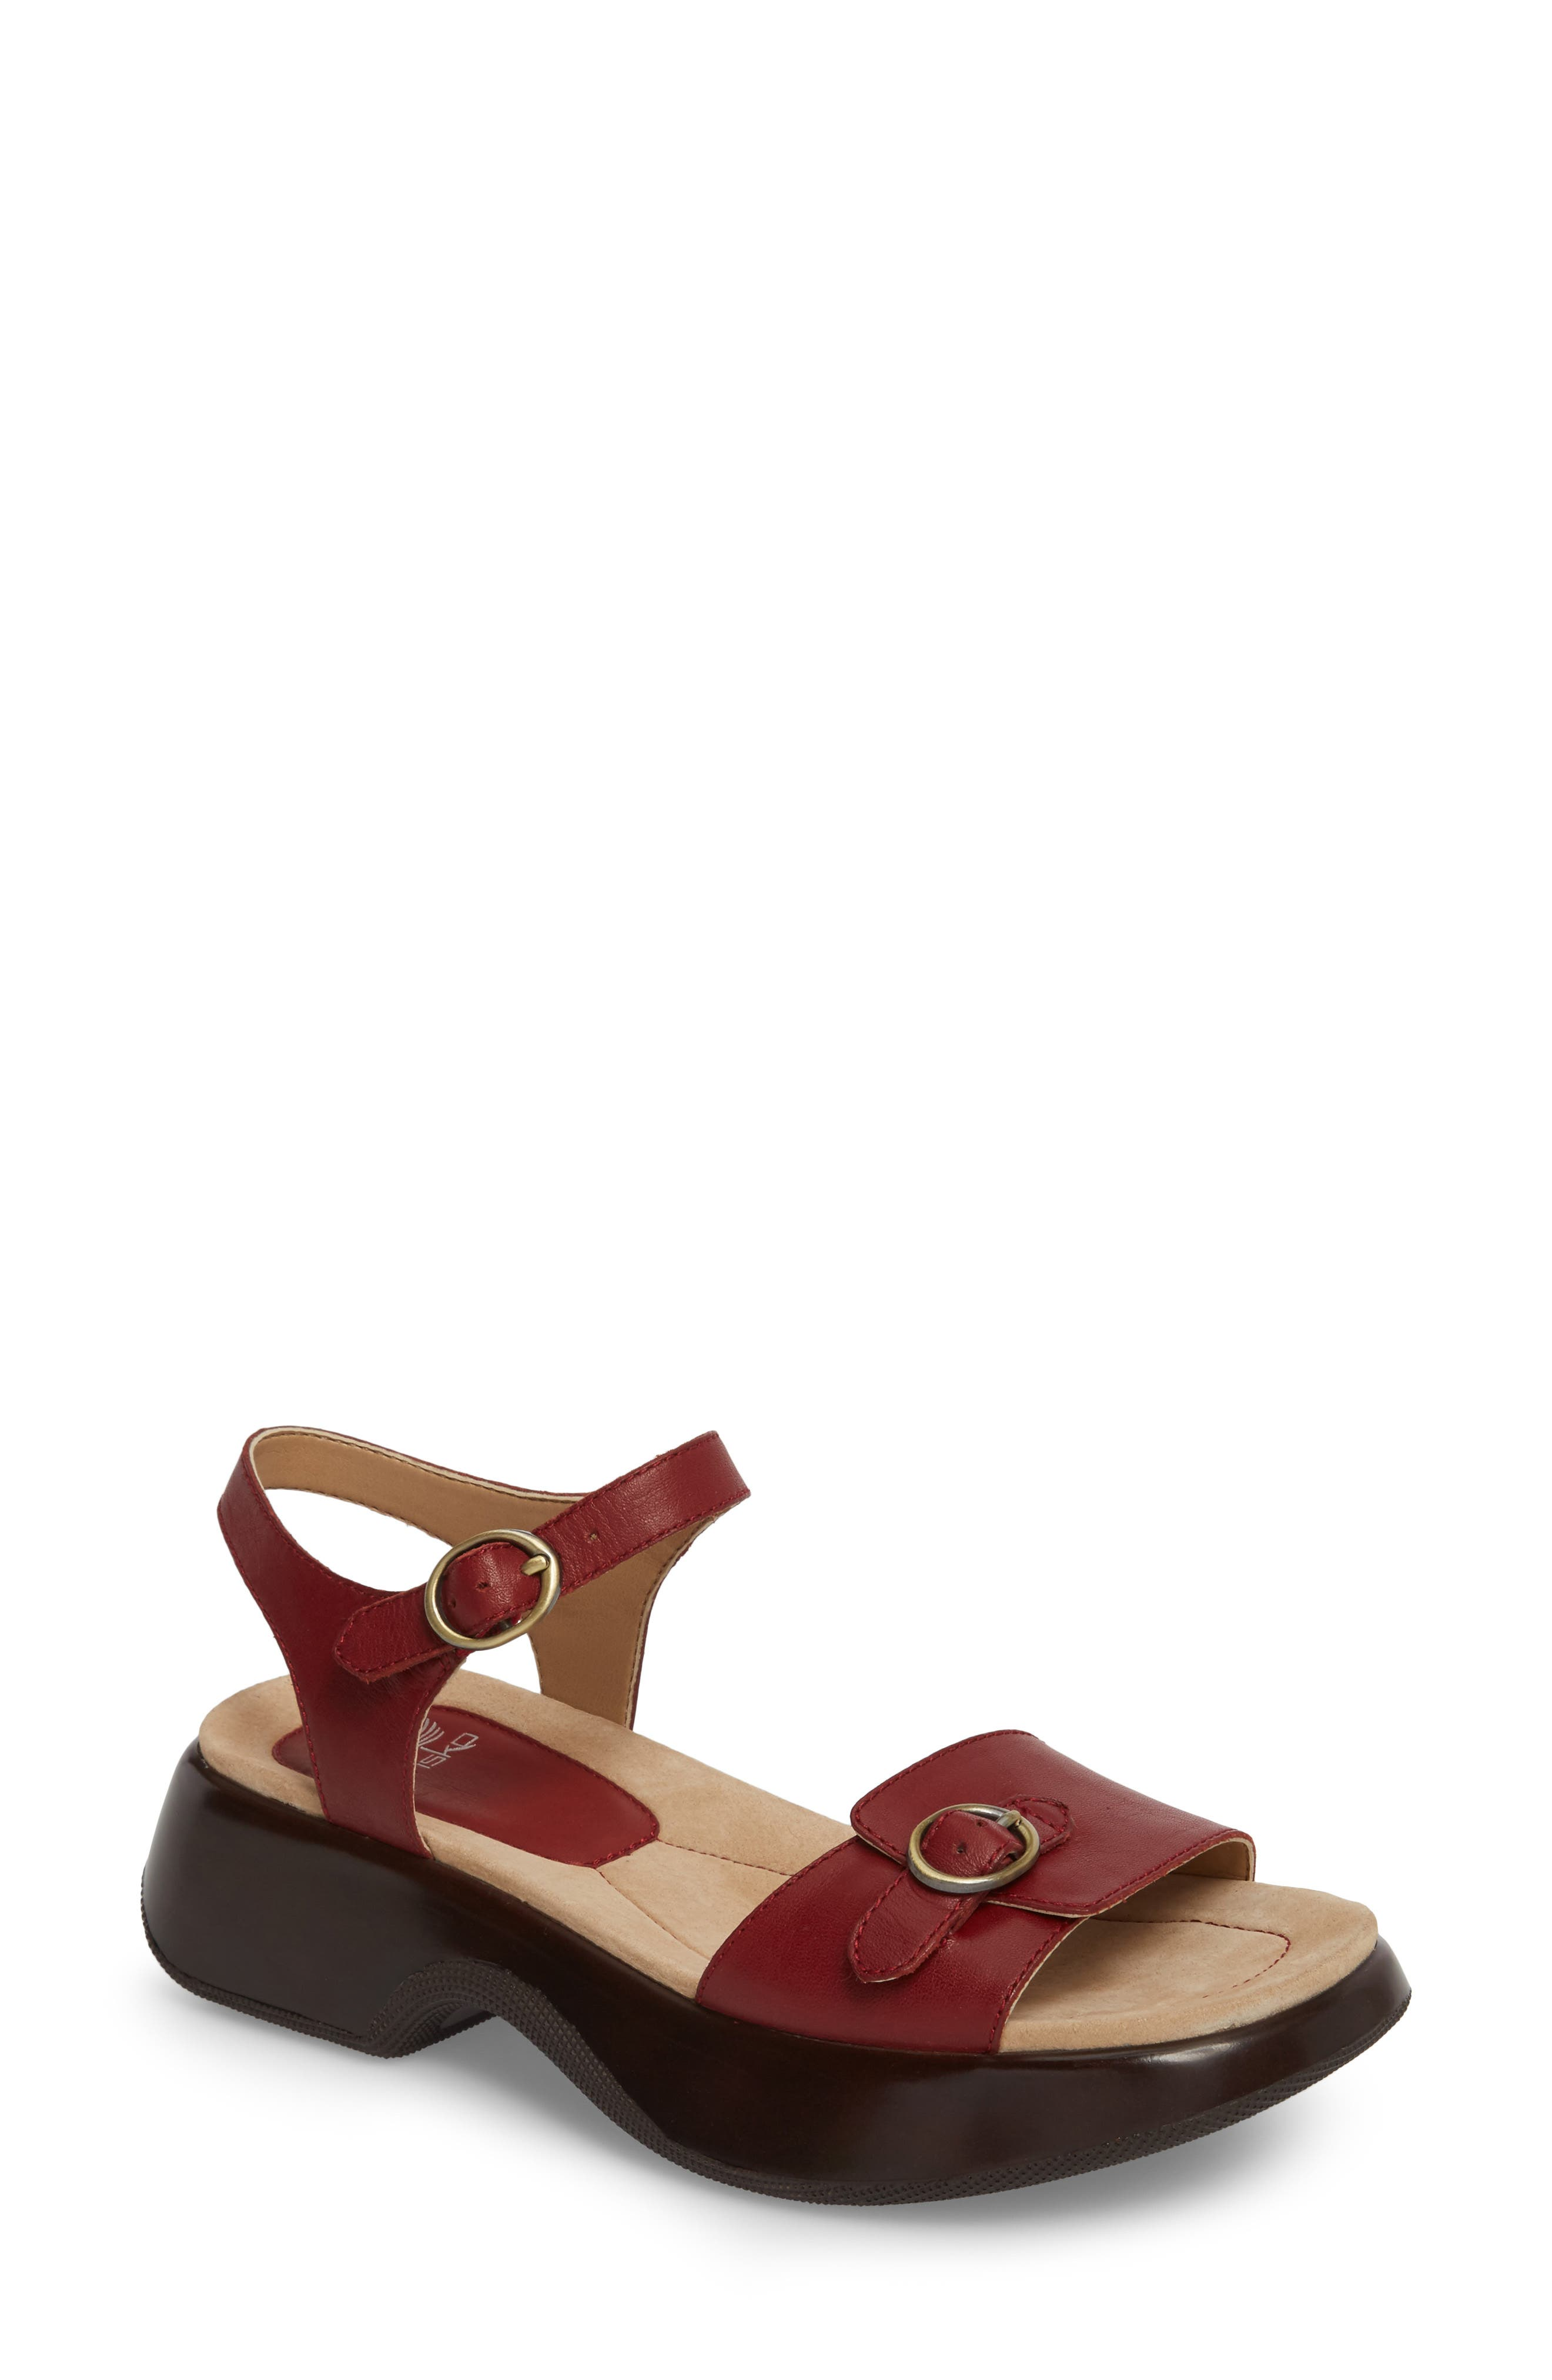 Lynnie Sandal,                             Main thumbnail 1, color,                             Red Leather